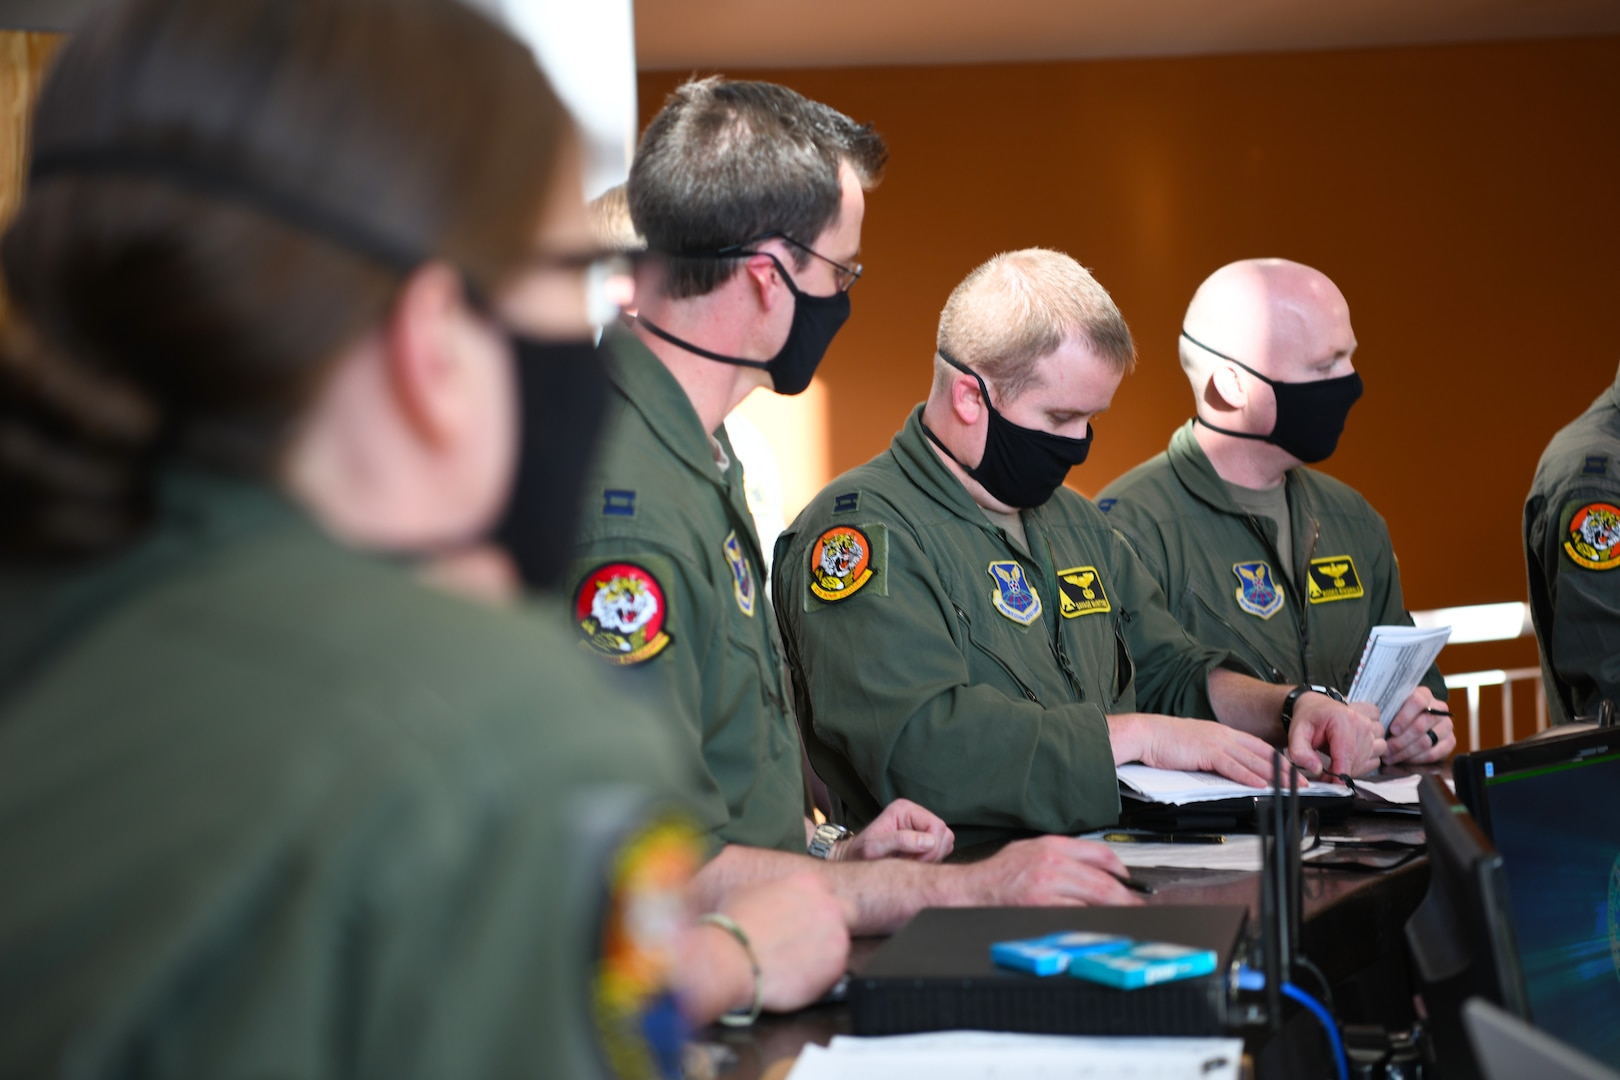 Aviators from the 37th Bomb Squadron receive a final mission briefing before launching B-1B Lancers from Ellsworth Air Force Base, S.D., April 28, 2020. The crew flew two B-1s from the continental United States and conducted operations over the South China Sea as part of a joint U.S. Indo-Pacific Command and U.S. Strategic Command Bomber Task Force mission. (U.S. Air Force photo by Senior Airman Nicolas Erwin)